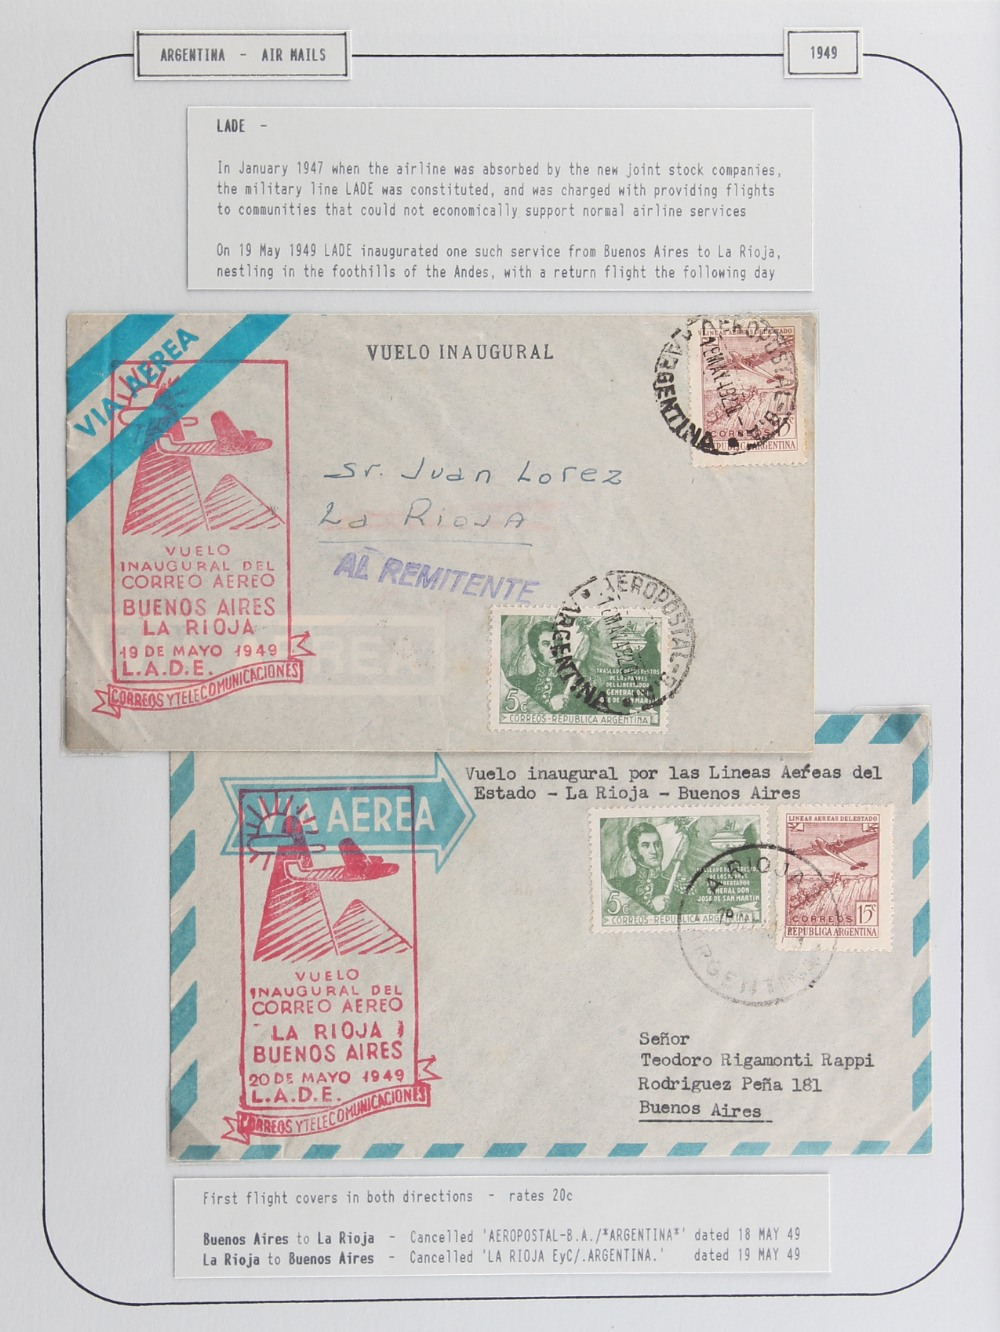 The Basil Lewis (1927-2019) collection of stamps - Argentina: 1940-60 including LADE, Condor /